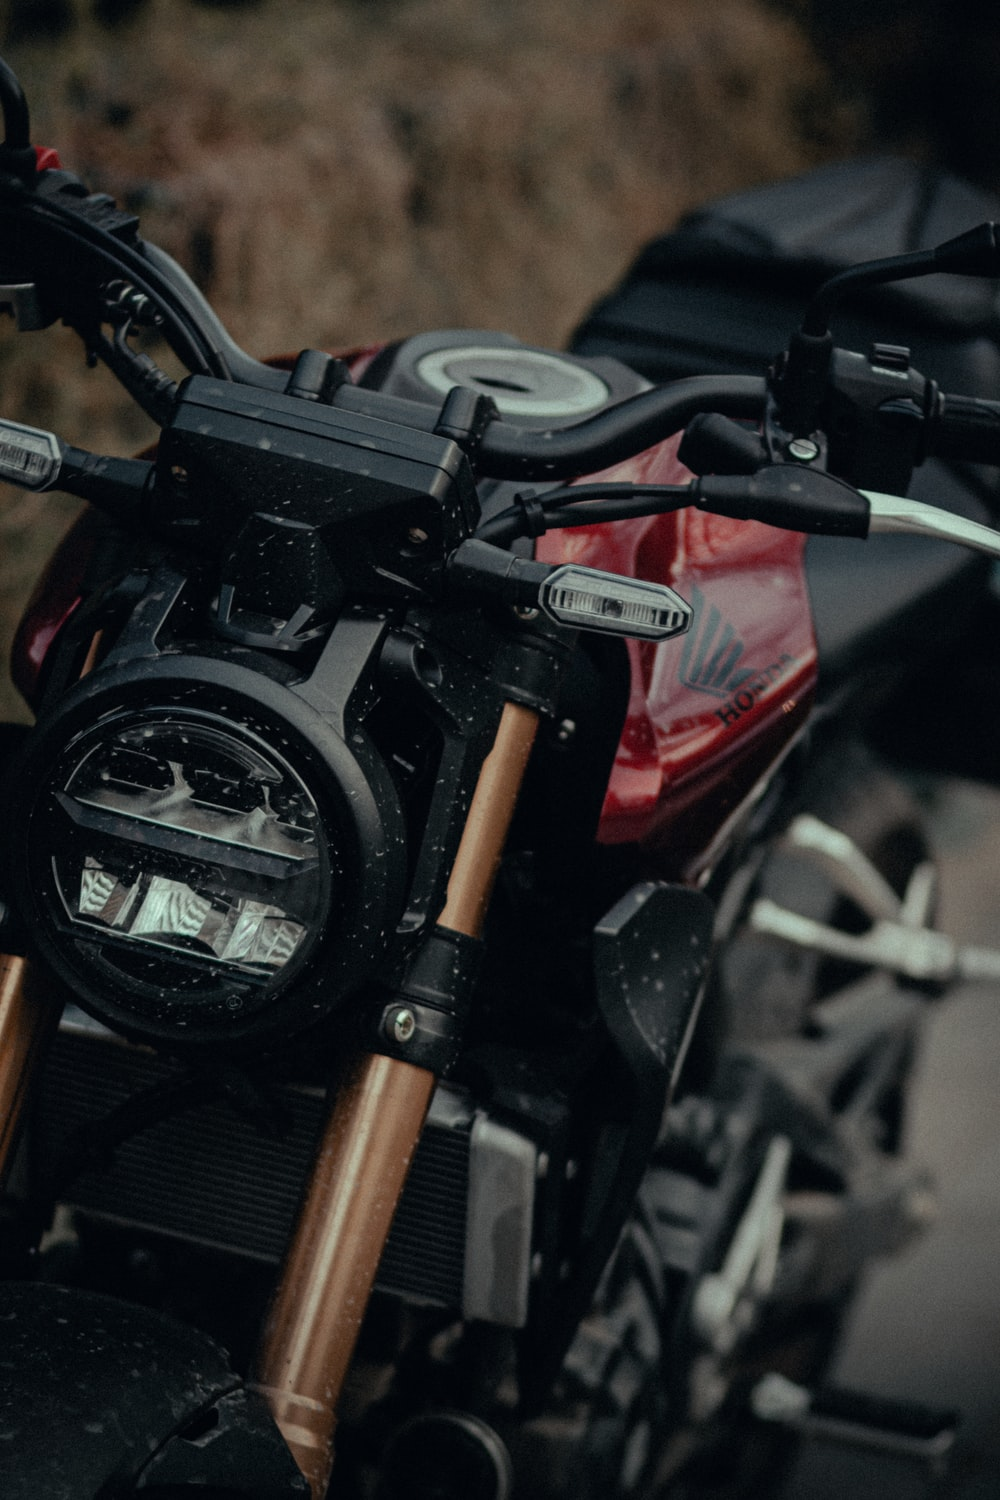 black and red motorcycle in close up photography